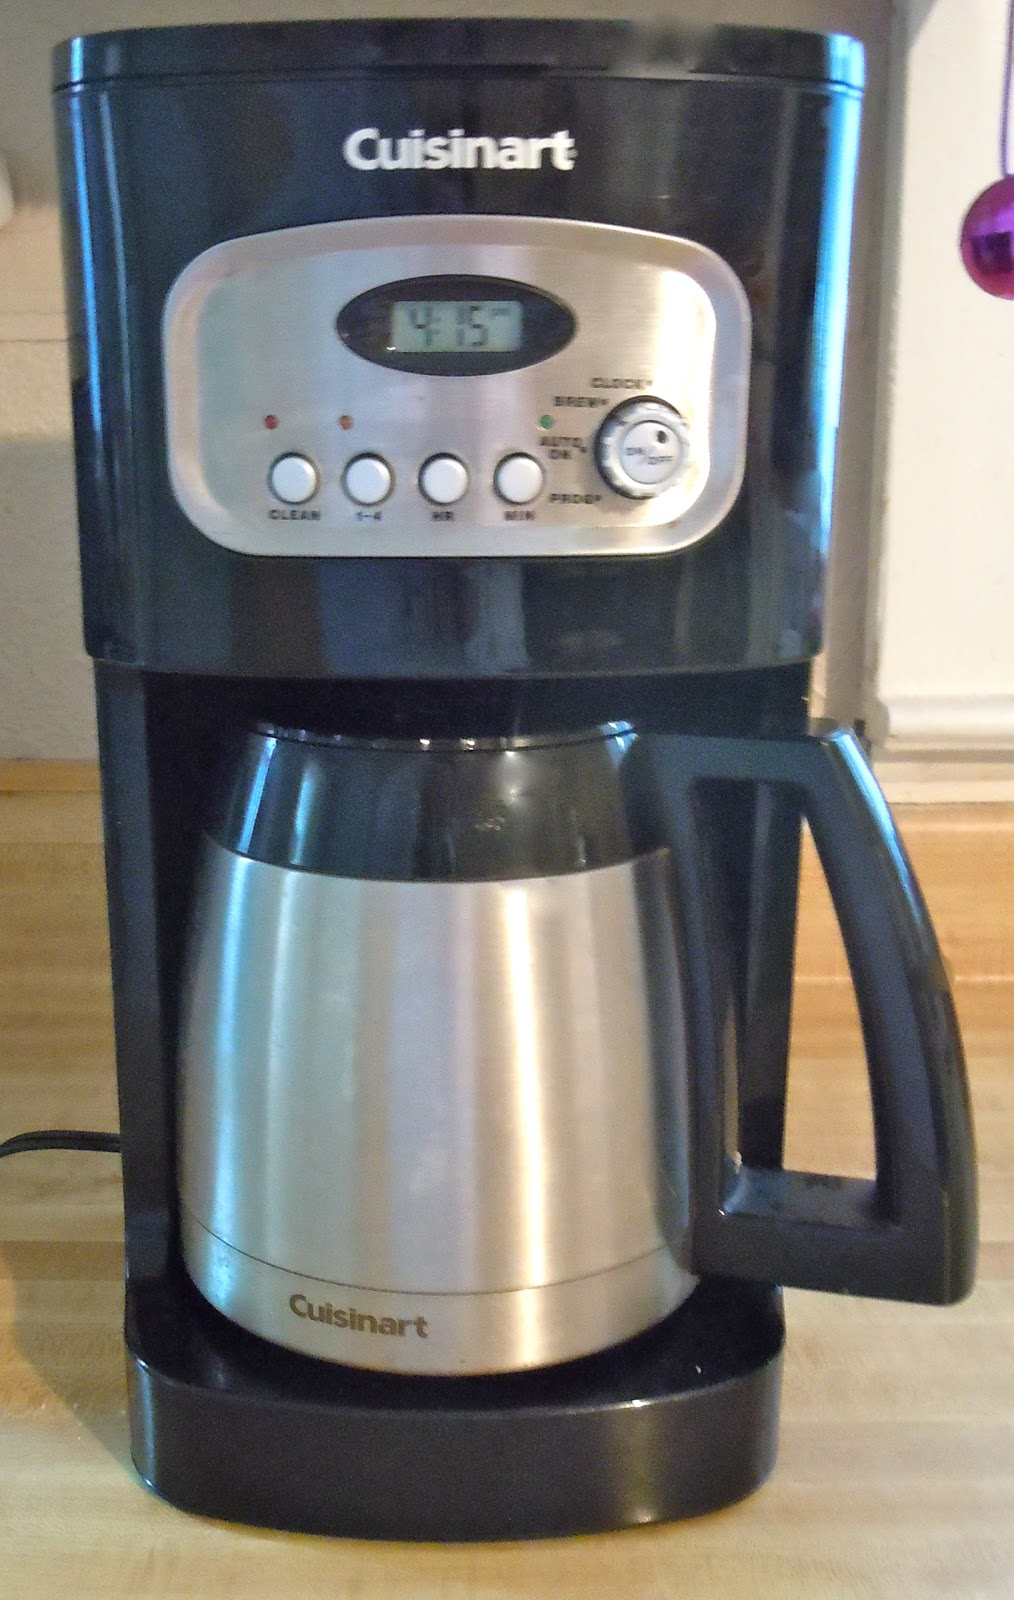 Thermal Coffee Maker Ratings Reviews : Samantha Rambles: Cuisinart 10 Cup Programmable Thermal Coffee Maker Review